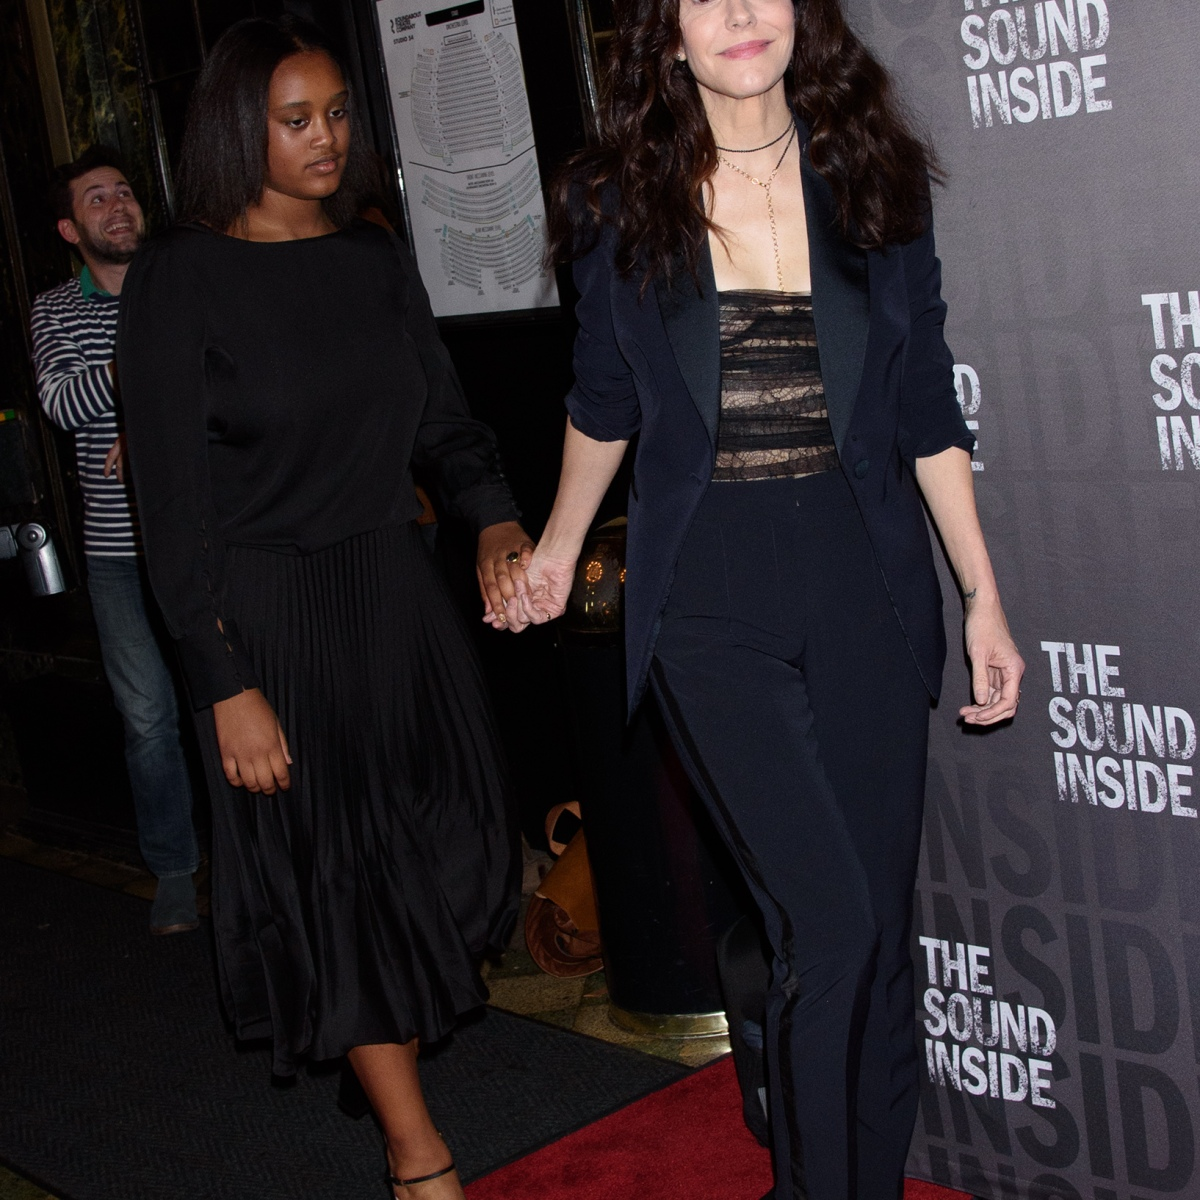 Mary-Louise Parker Must Be So Proud of Her Children — Meet the Actress' 2 Kids